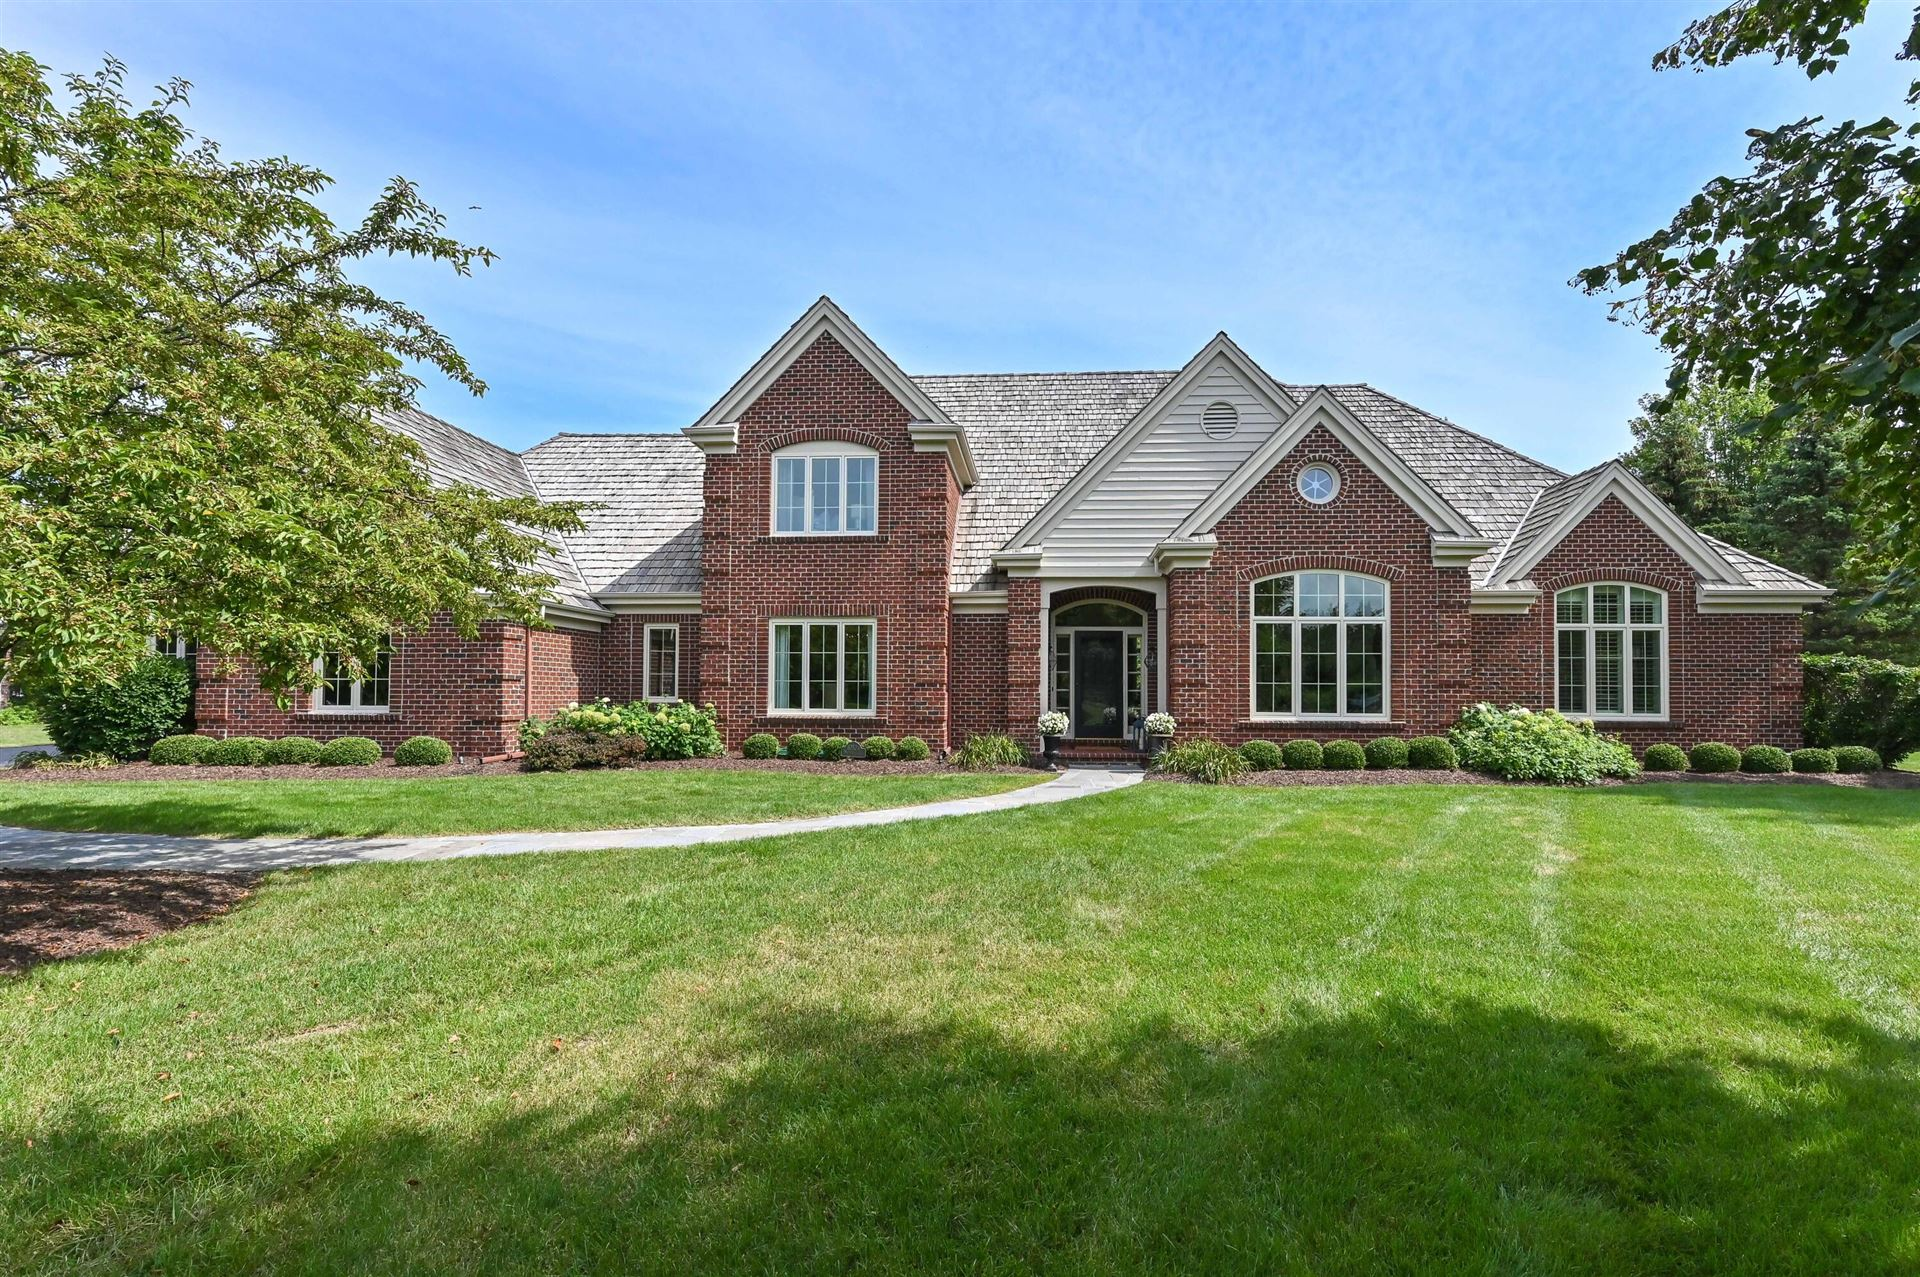 10524 N Wood Crest Dr, Mequon, WI 53092 - #: 1760998